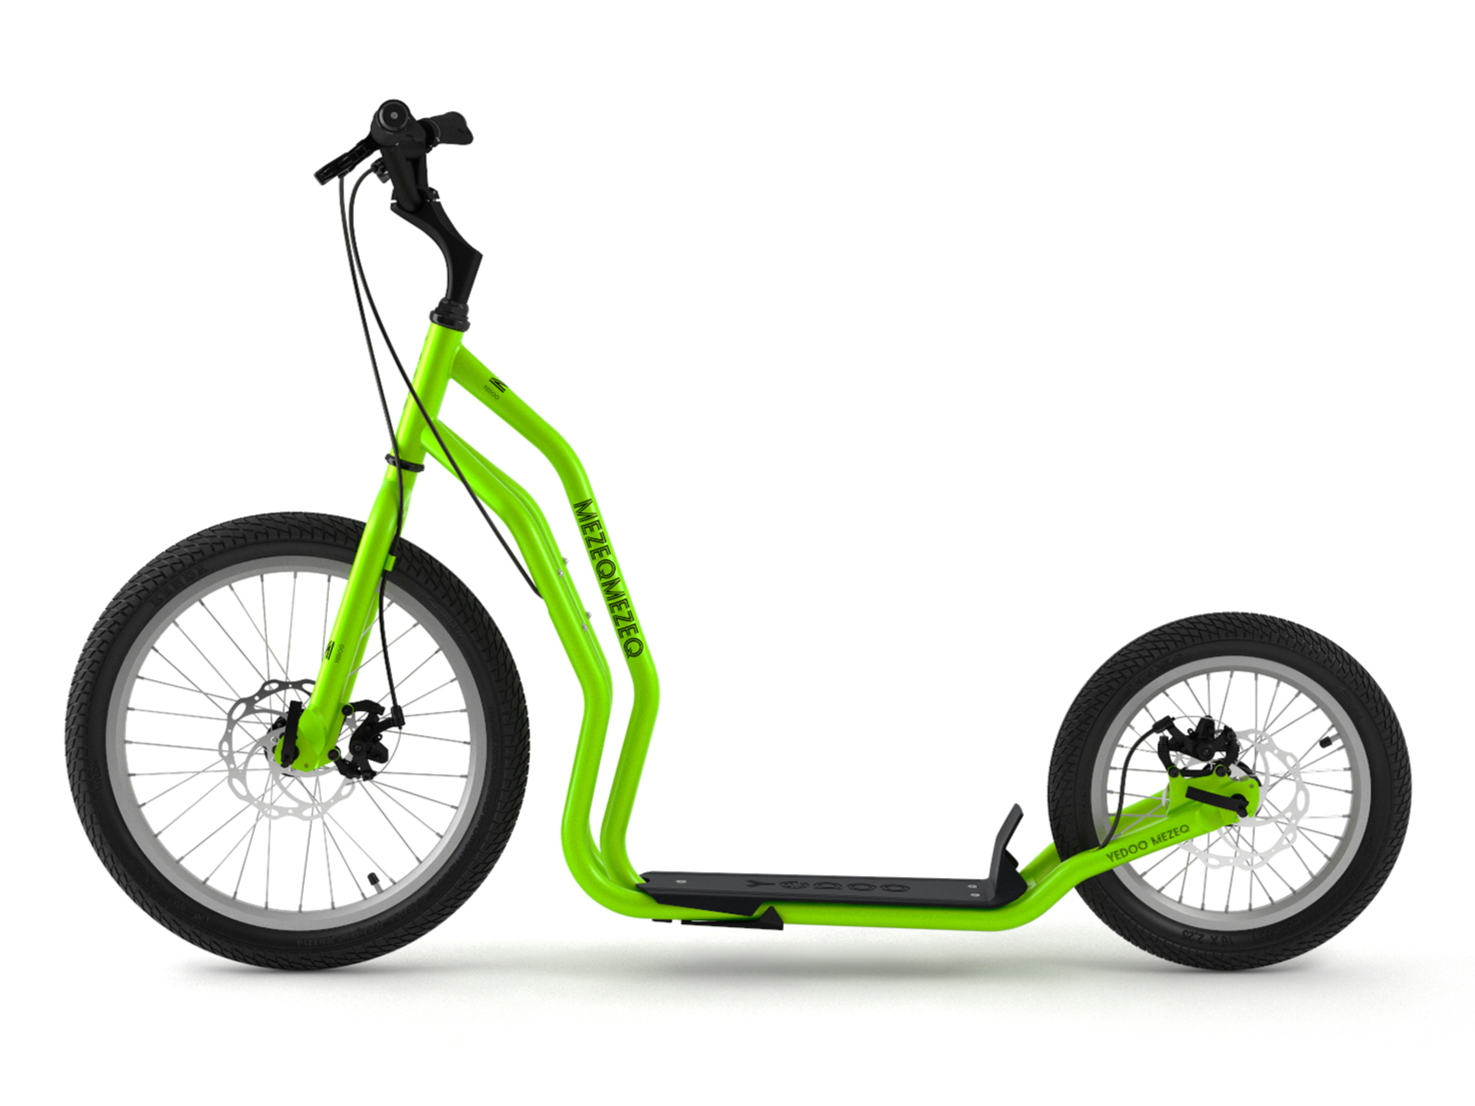 patinette new mezeq yedoo verte grosses roues poids maxi admissible 150kg